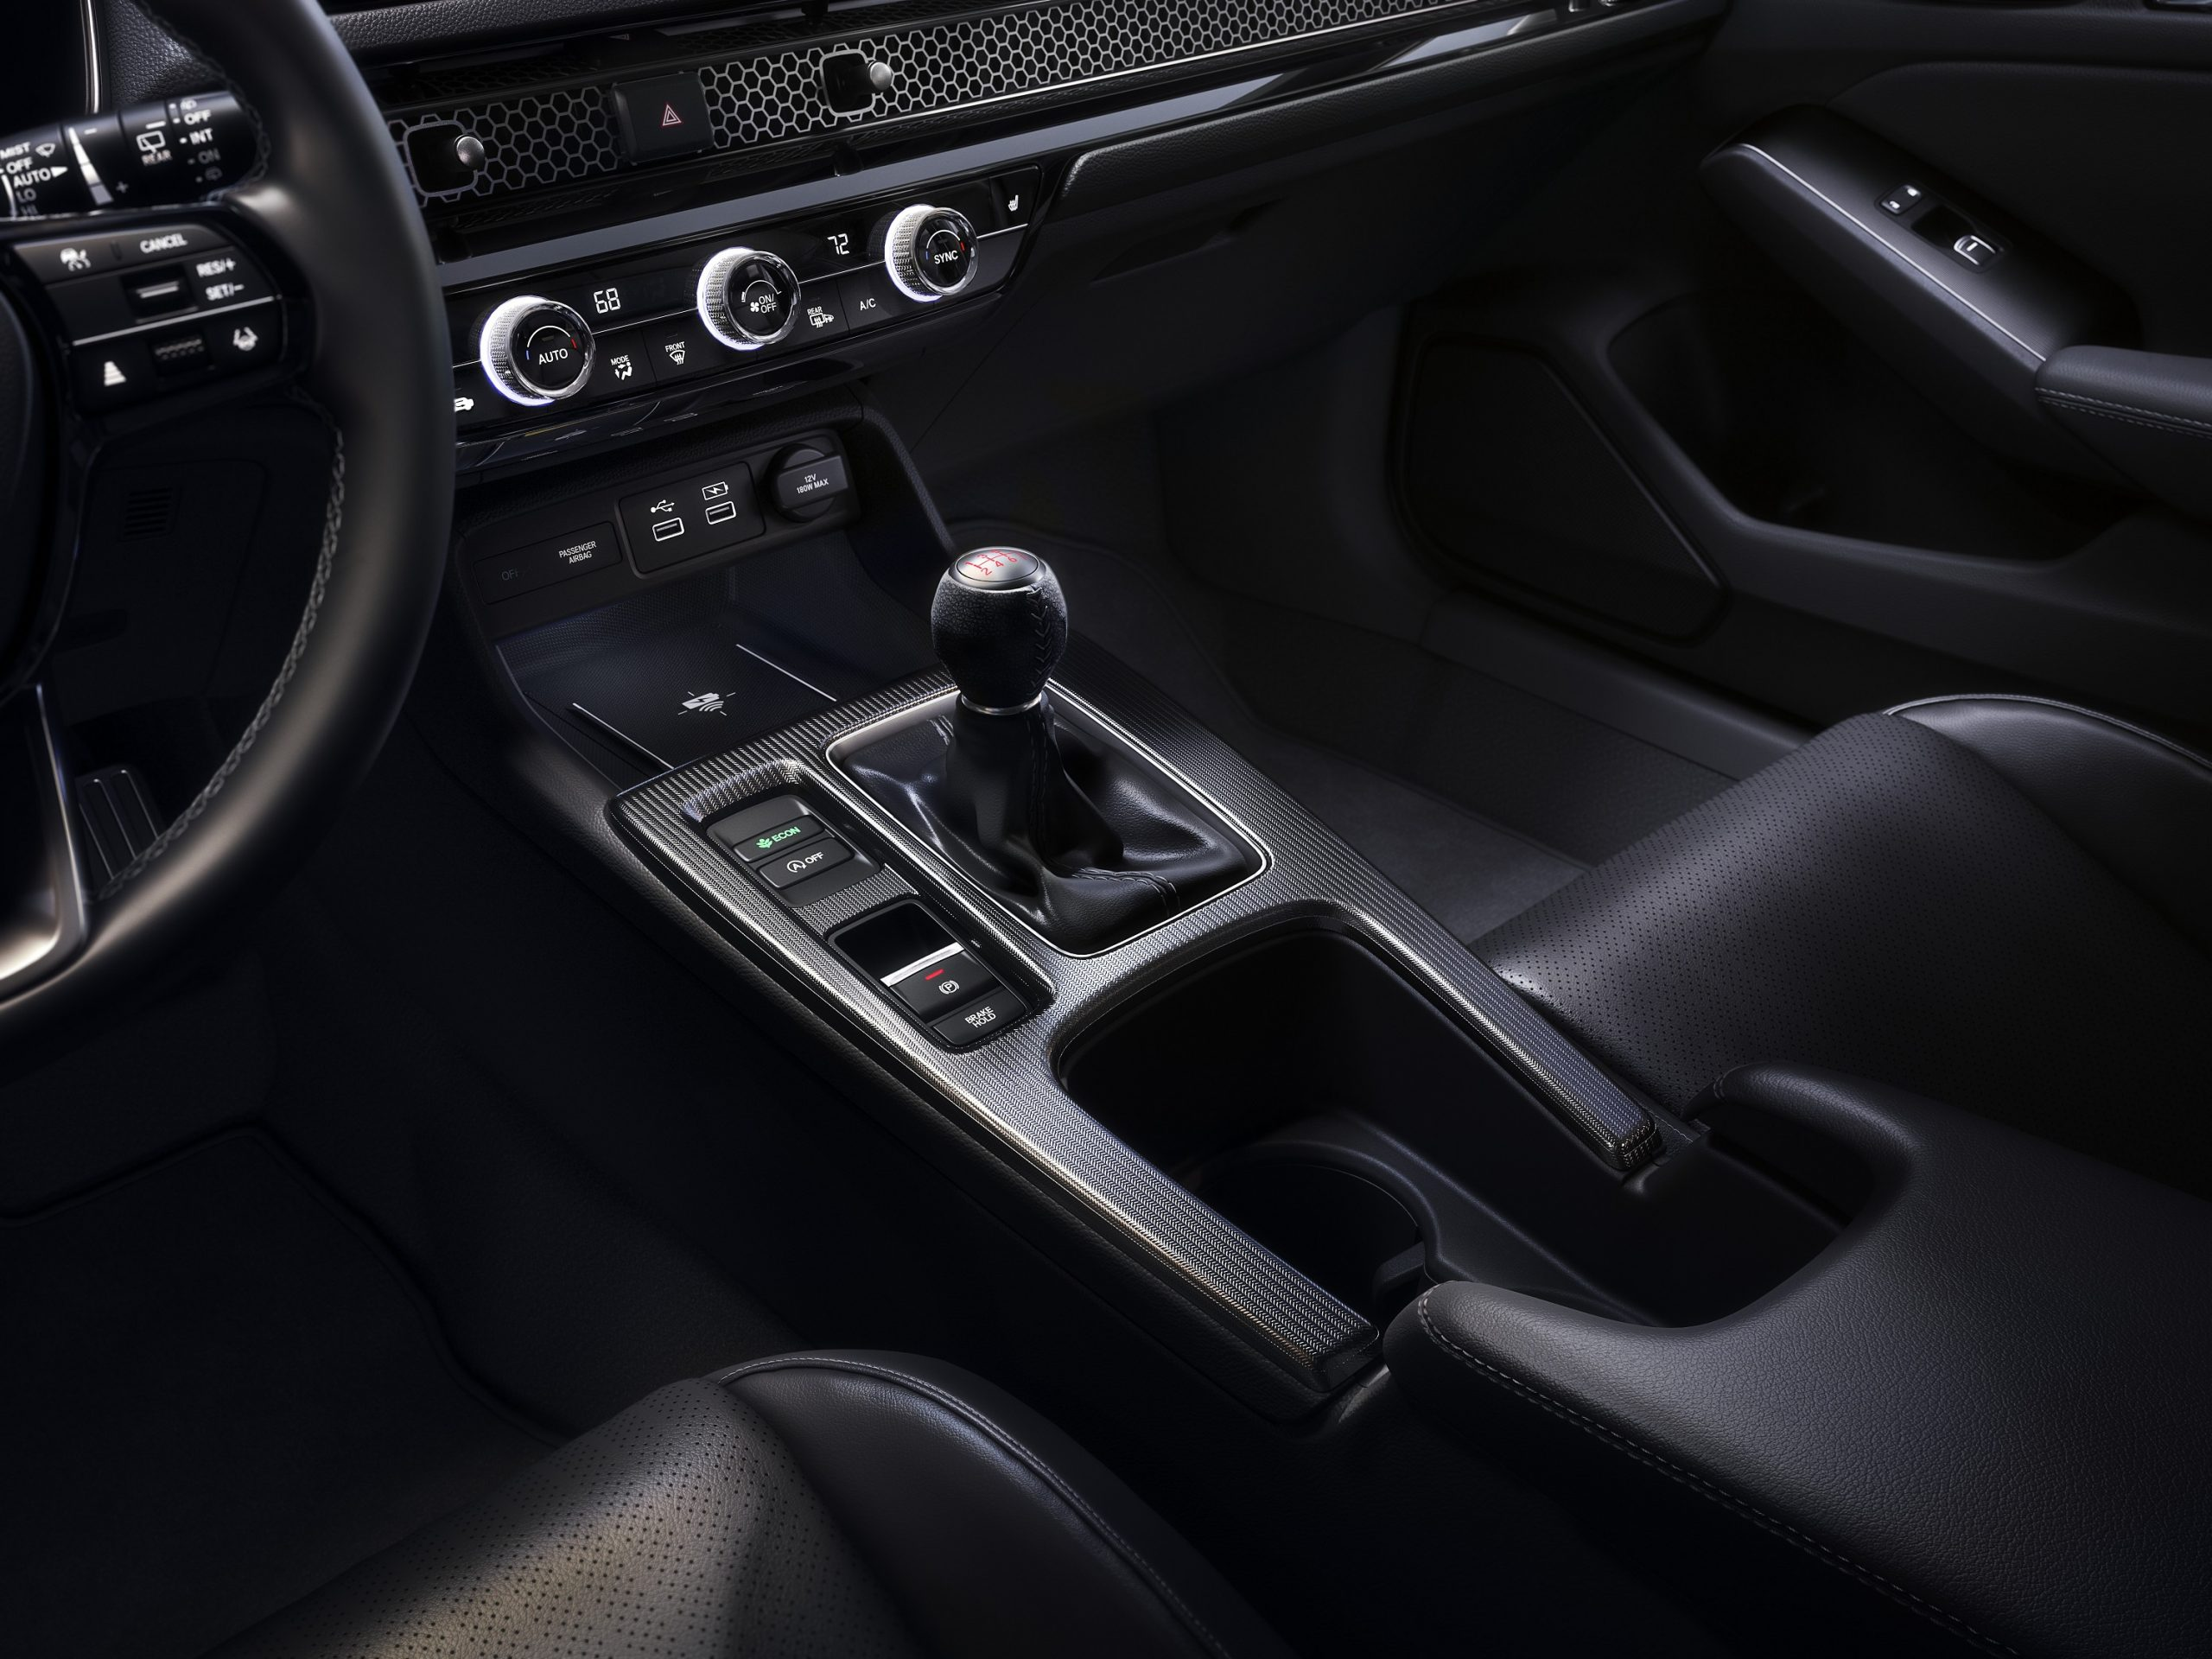 The manual transmission in the 2022 Honda Civic